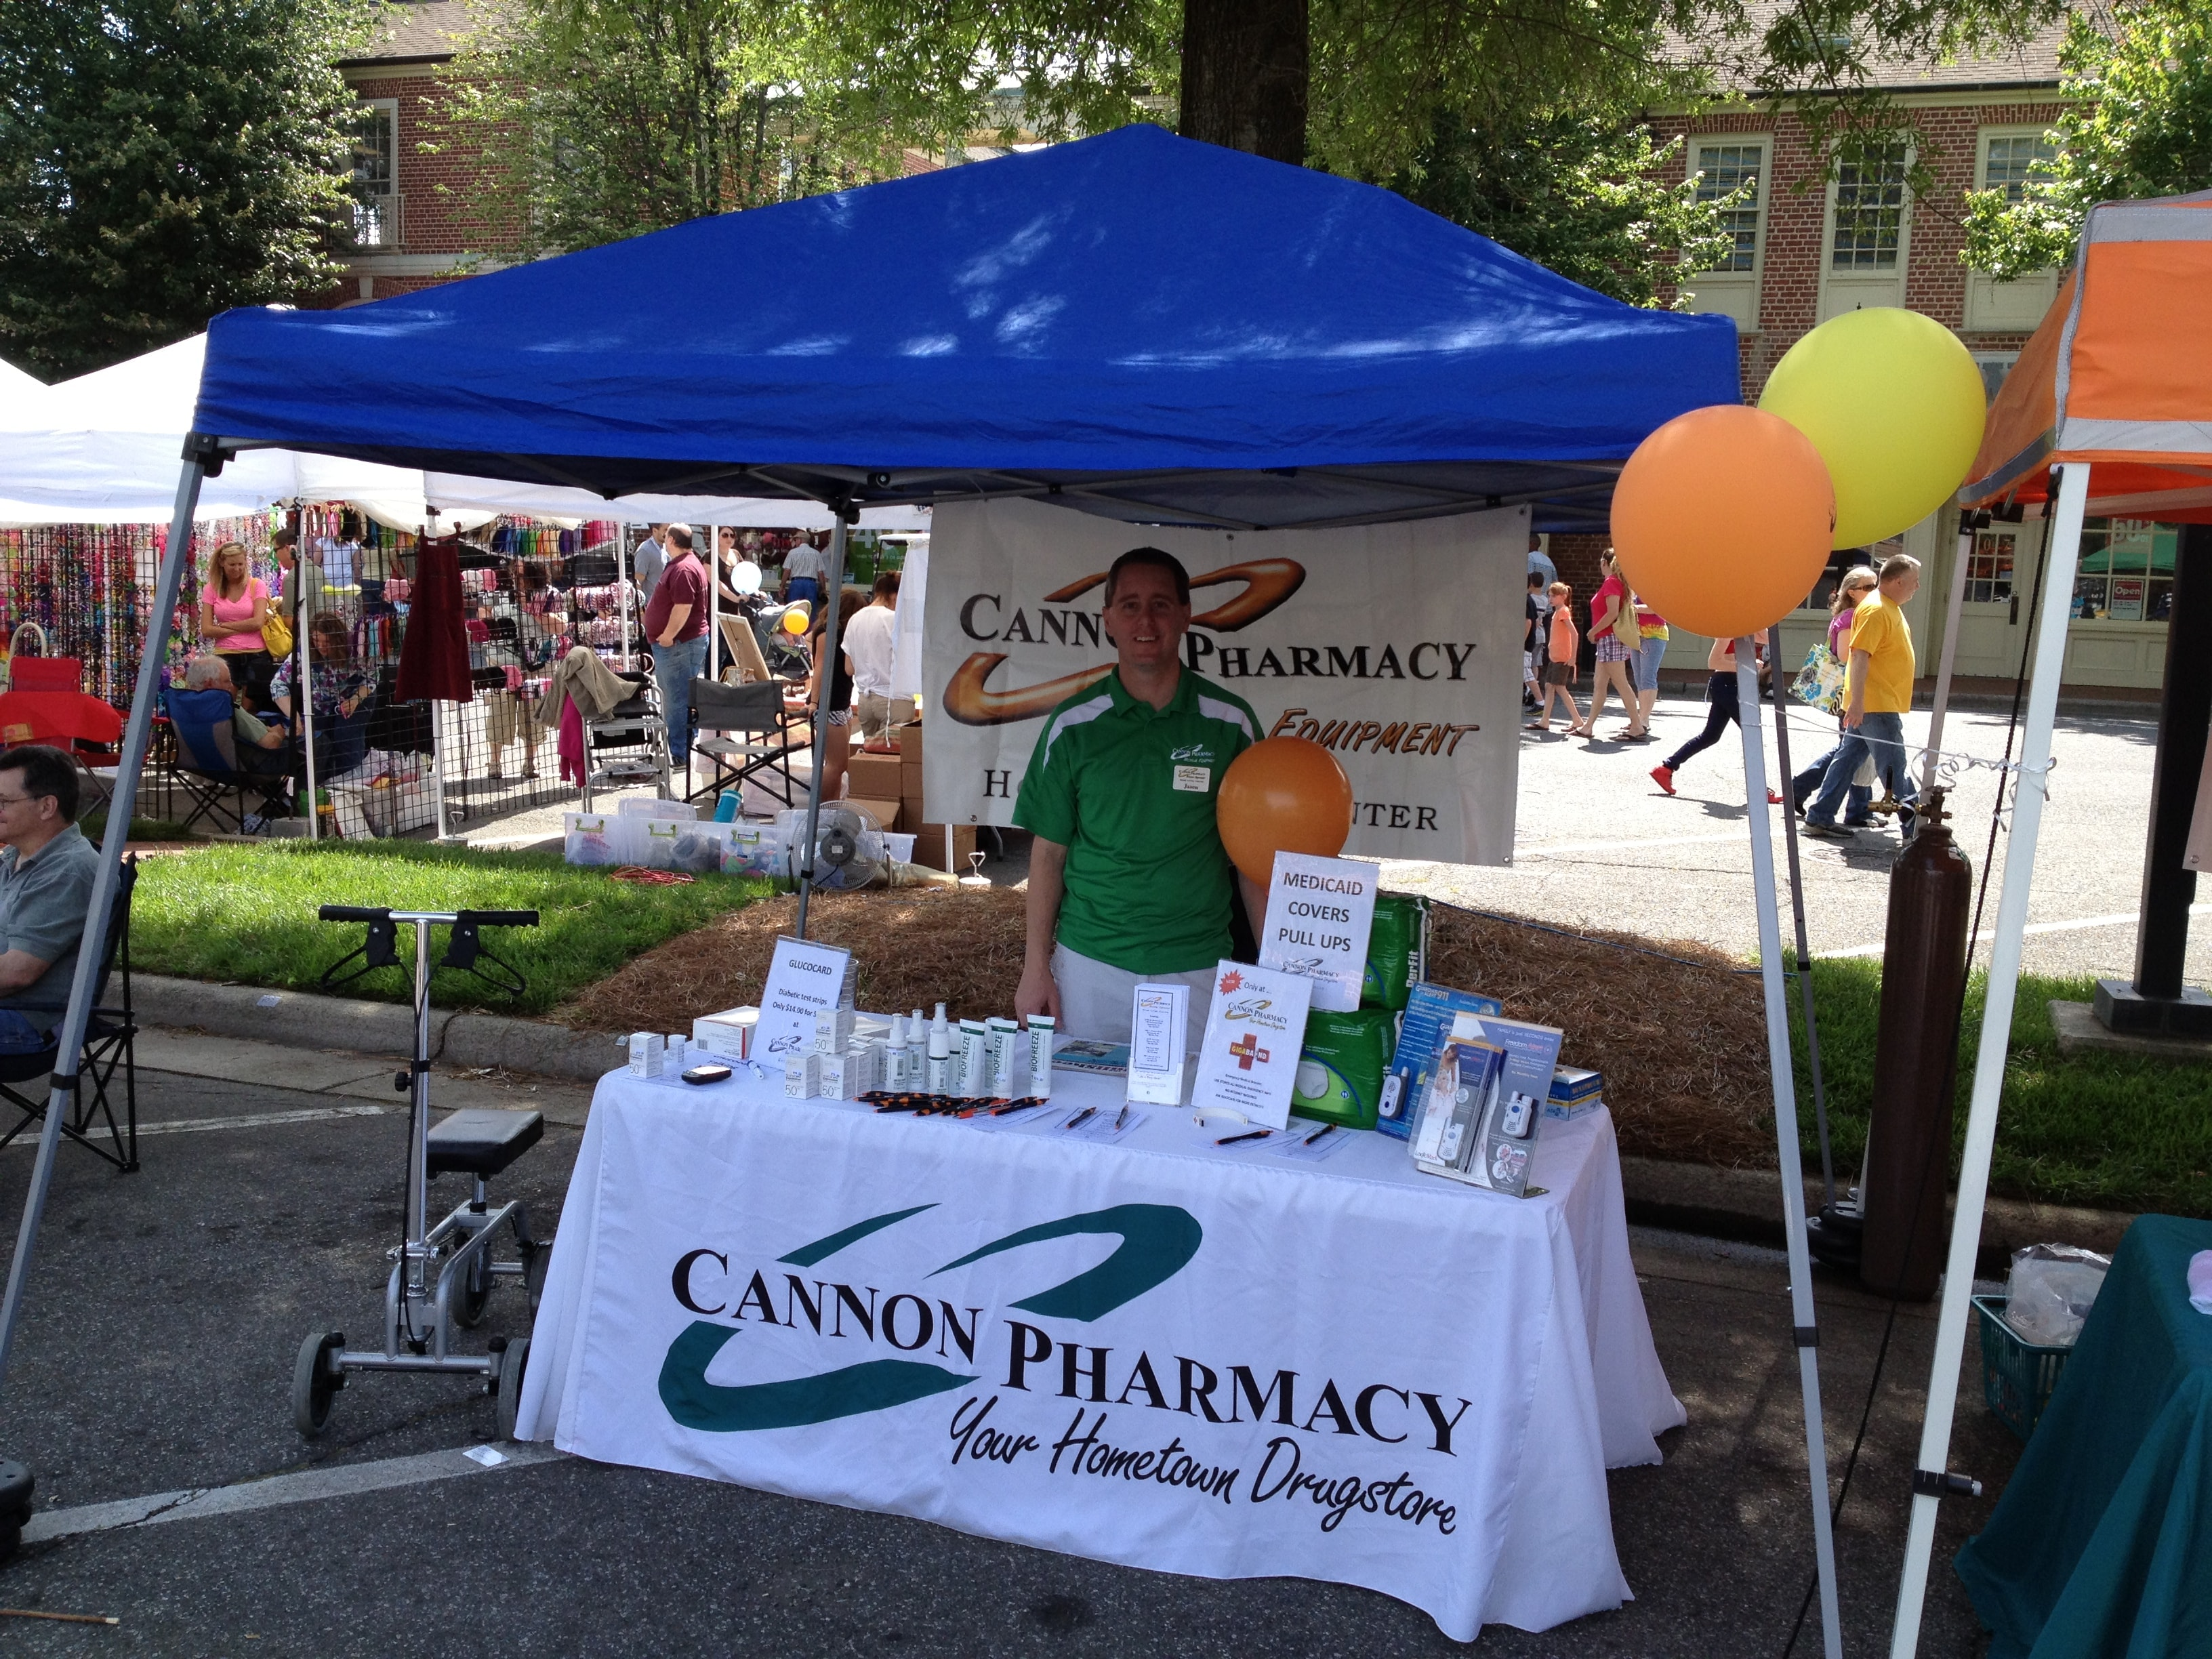 cannon pharmacy staff